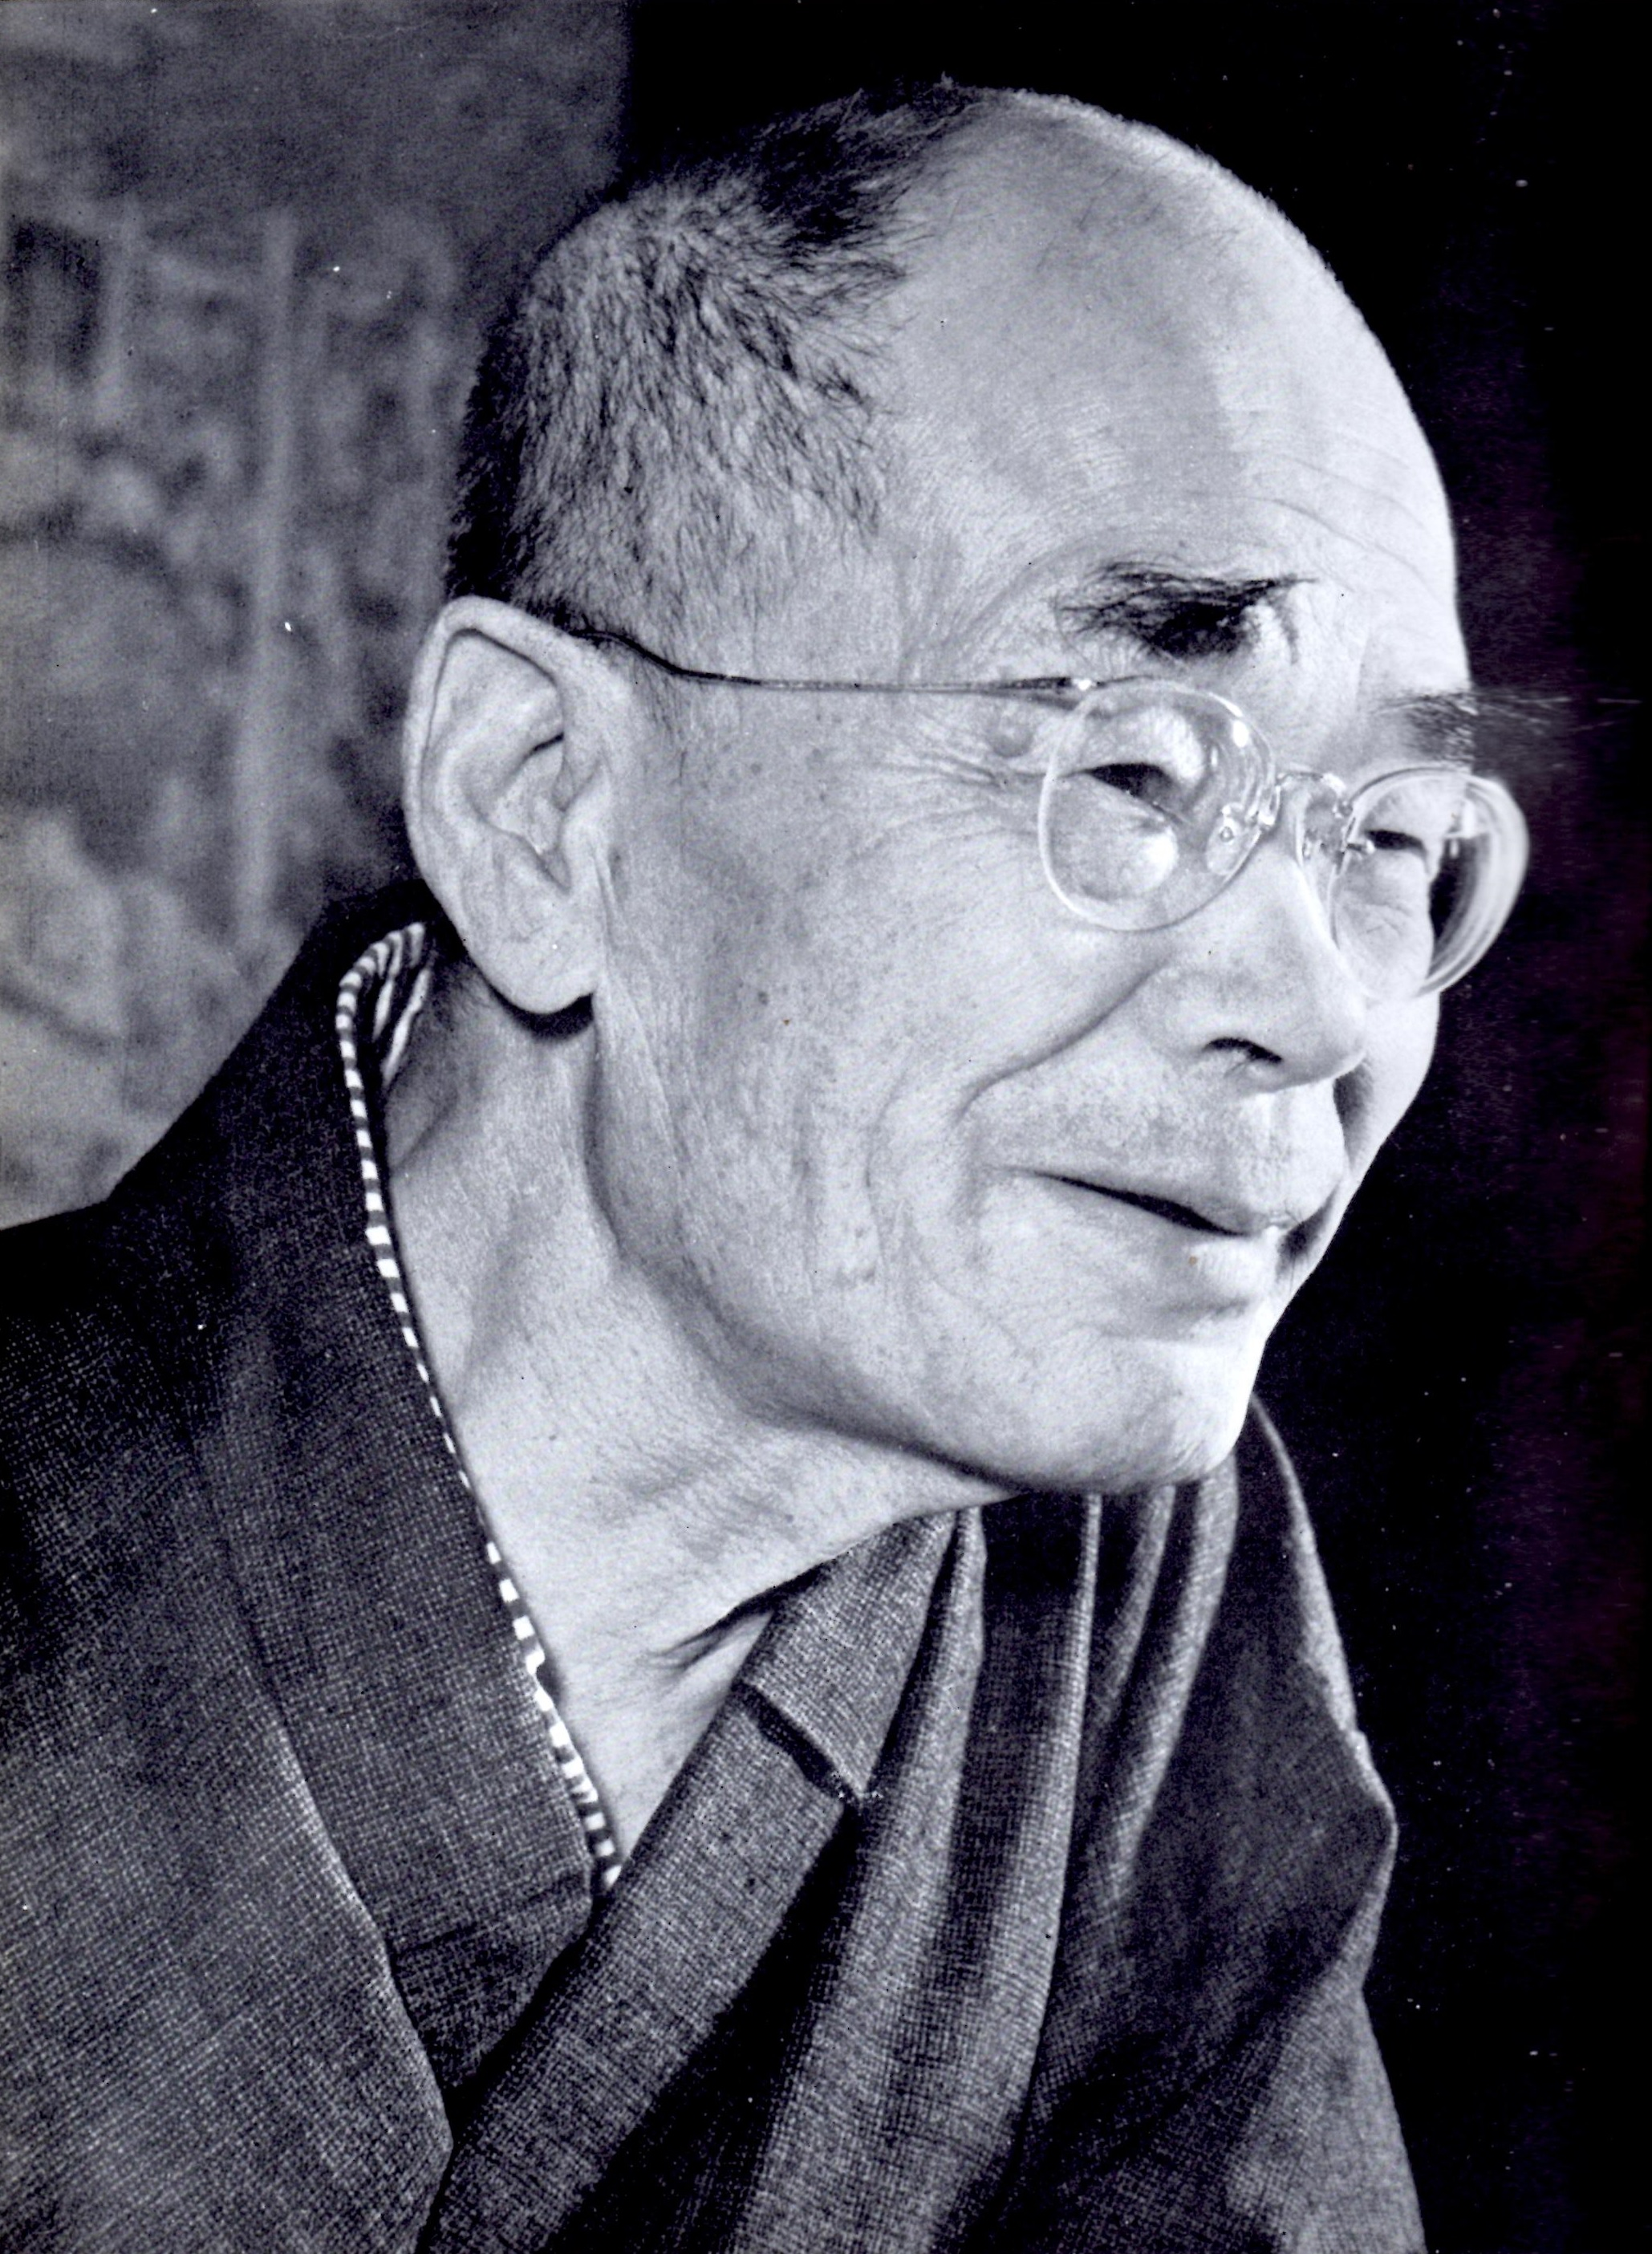 essays in zen buddhism first series by dt suzuki Hu shi and dt suzuki during his visit to china in 1934  essays in zen buddhism: first series  zen buddhism: selected writings of d t suzuki, doubleday,.